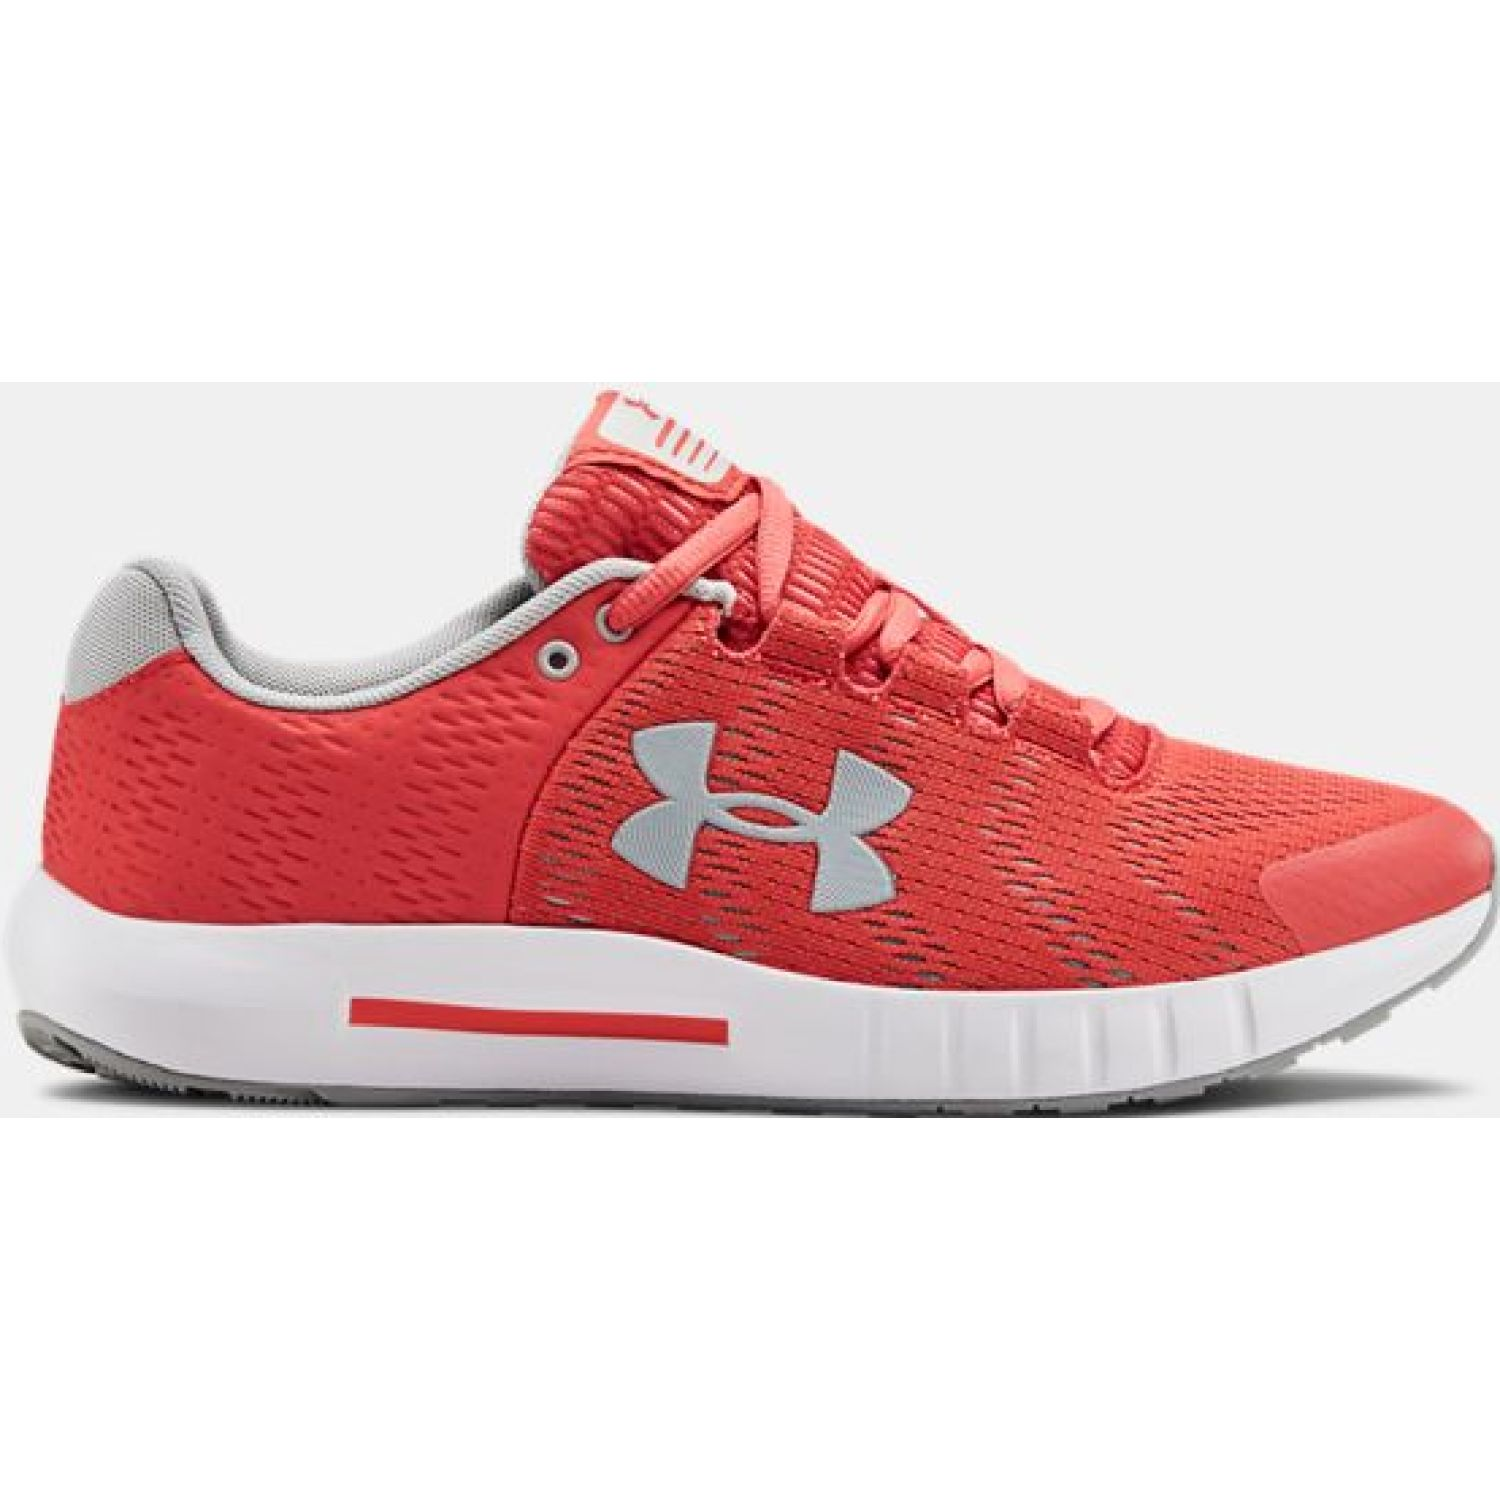 Under Armour ua w micro g pursuit bp Coral Walking